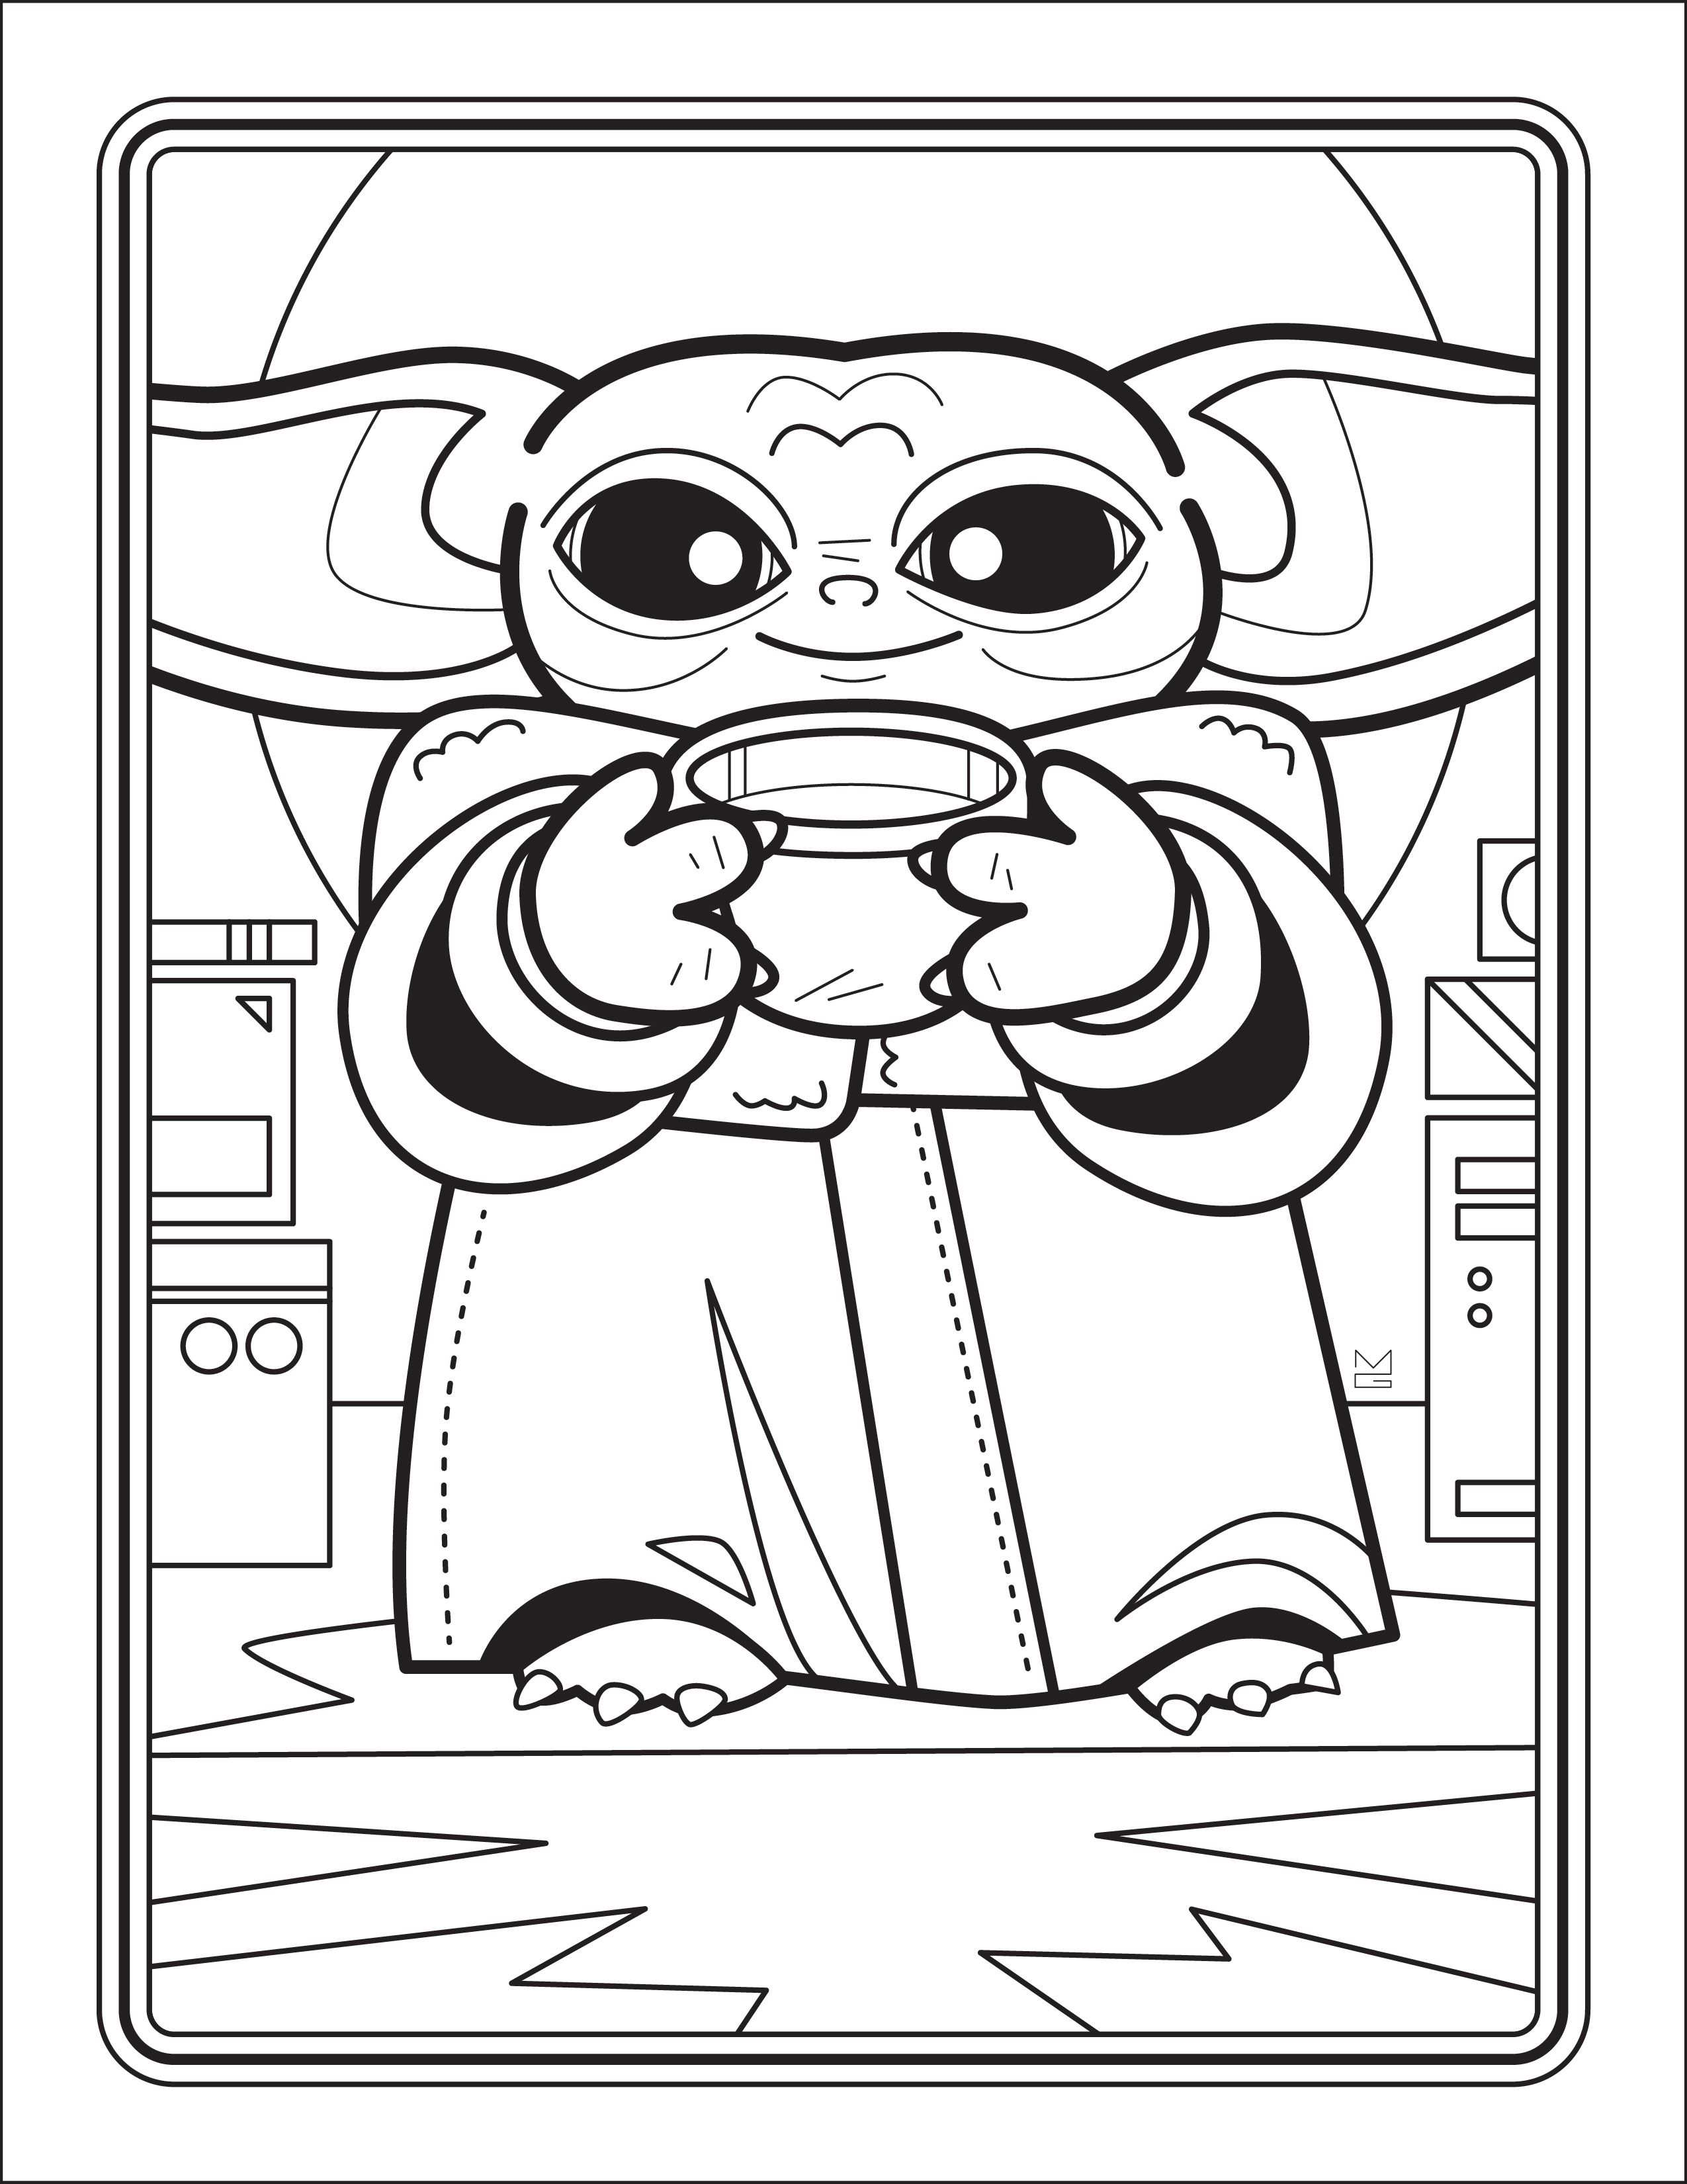 Six Free Coloring Sheets Of Baby Yoda Scenes From Star Wars The